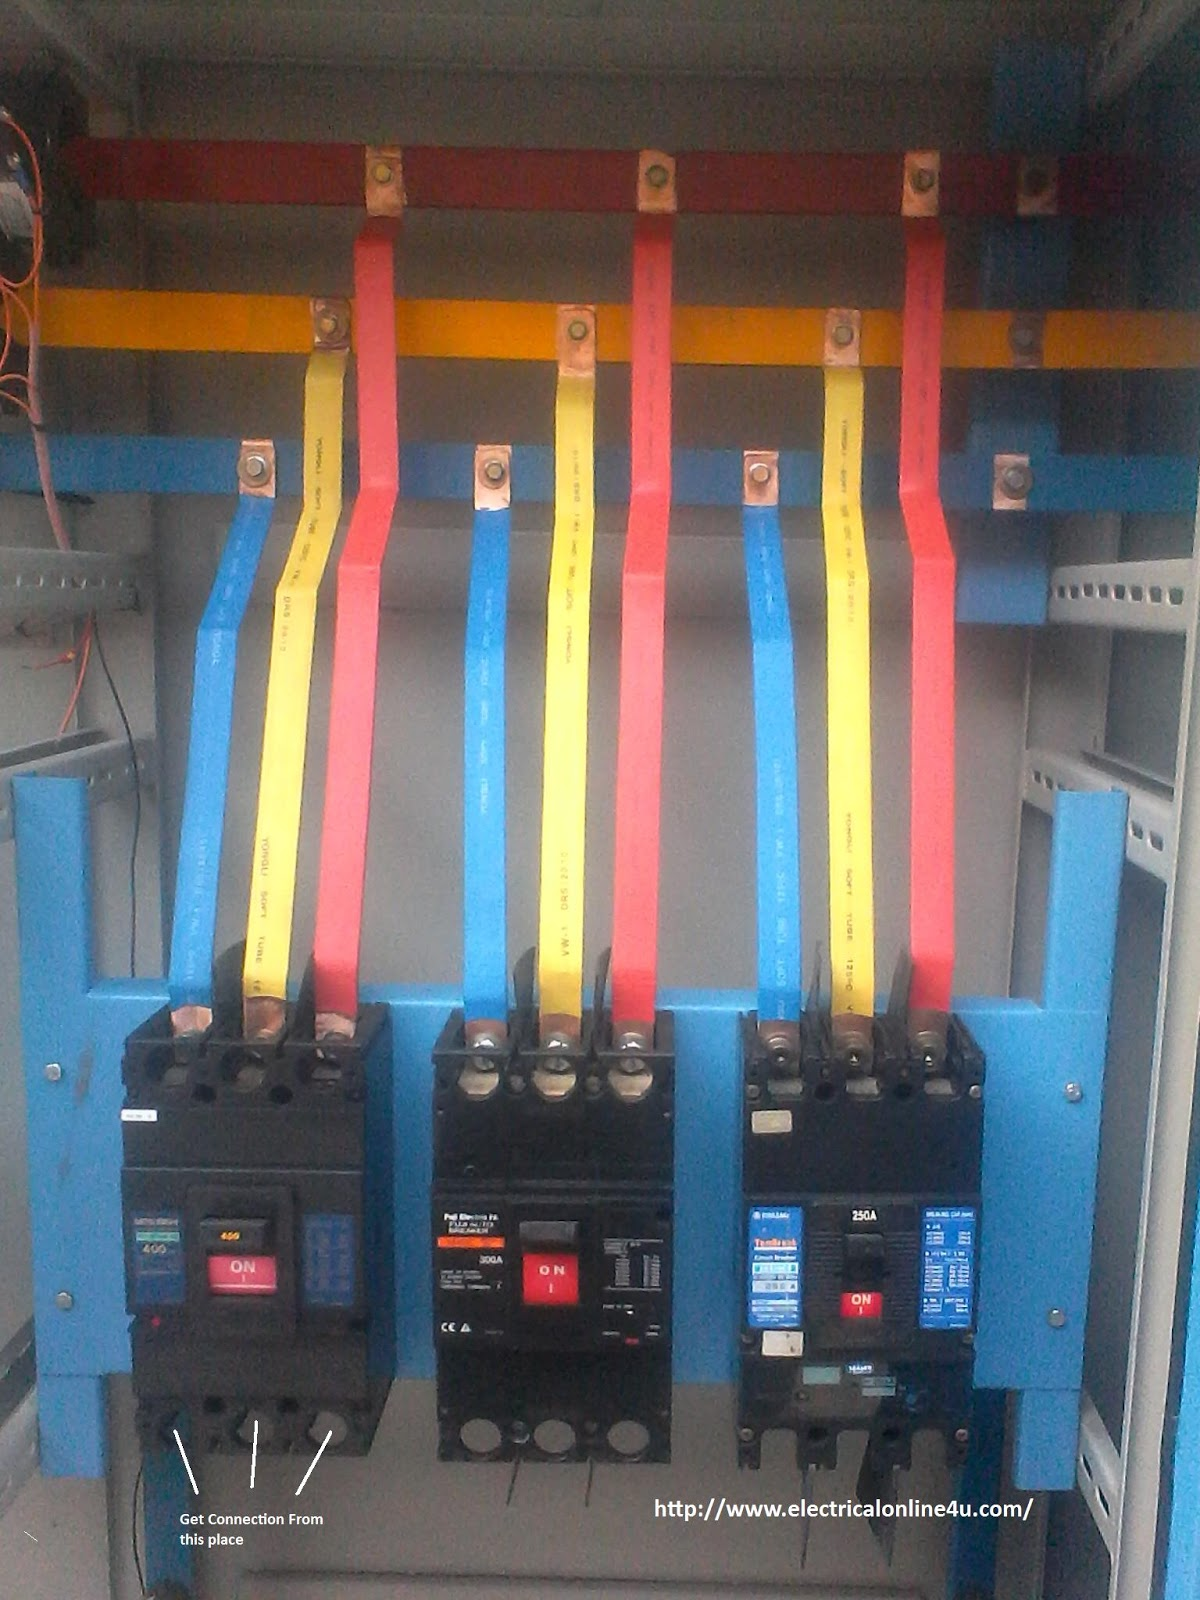 Farm Fuse Box Free Download Wiring Diagrams Pictures Wiring